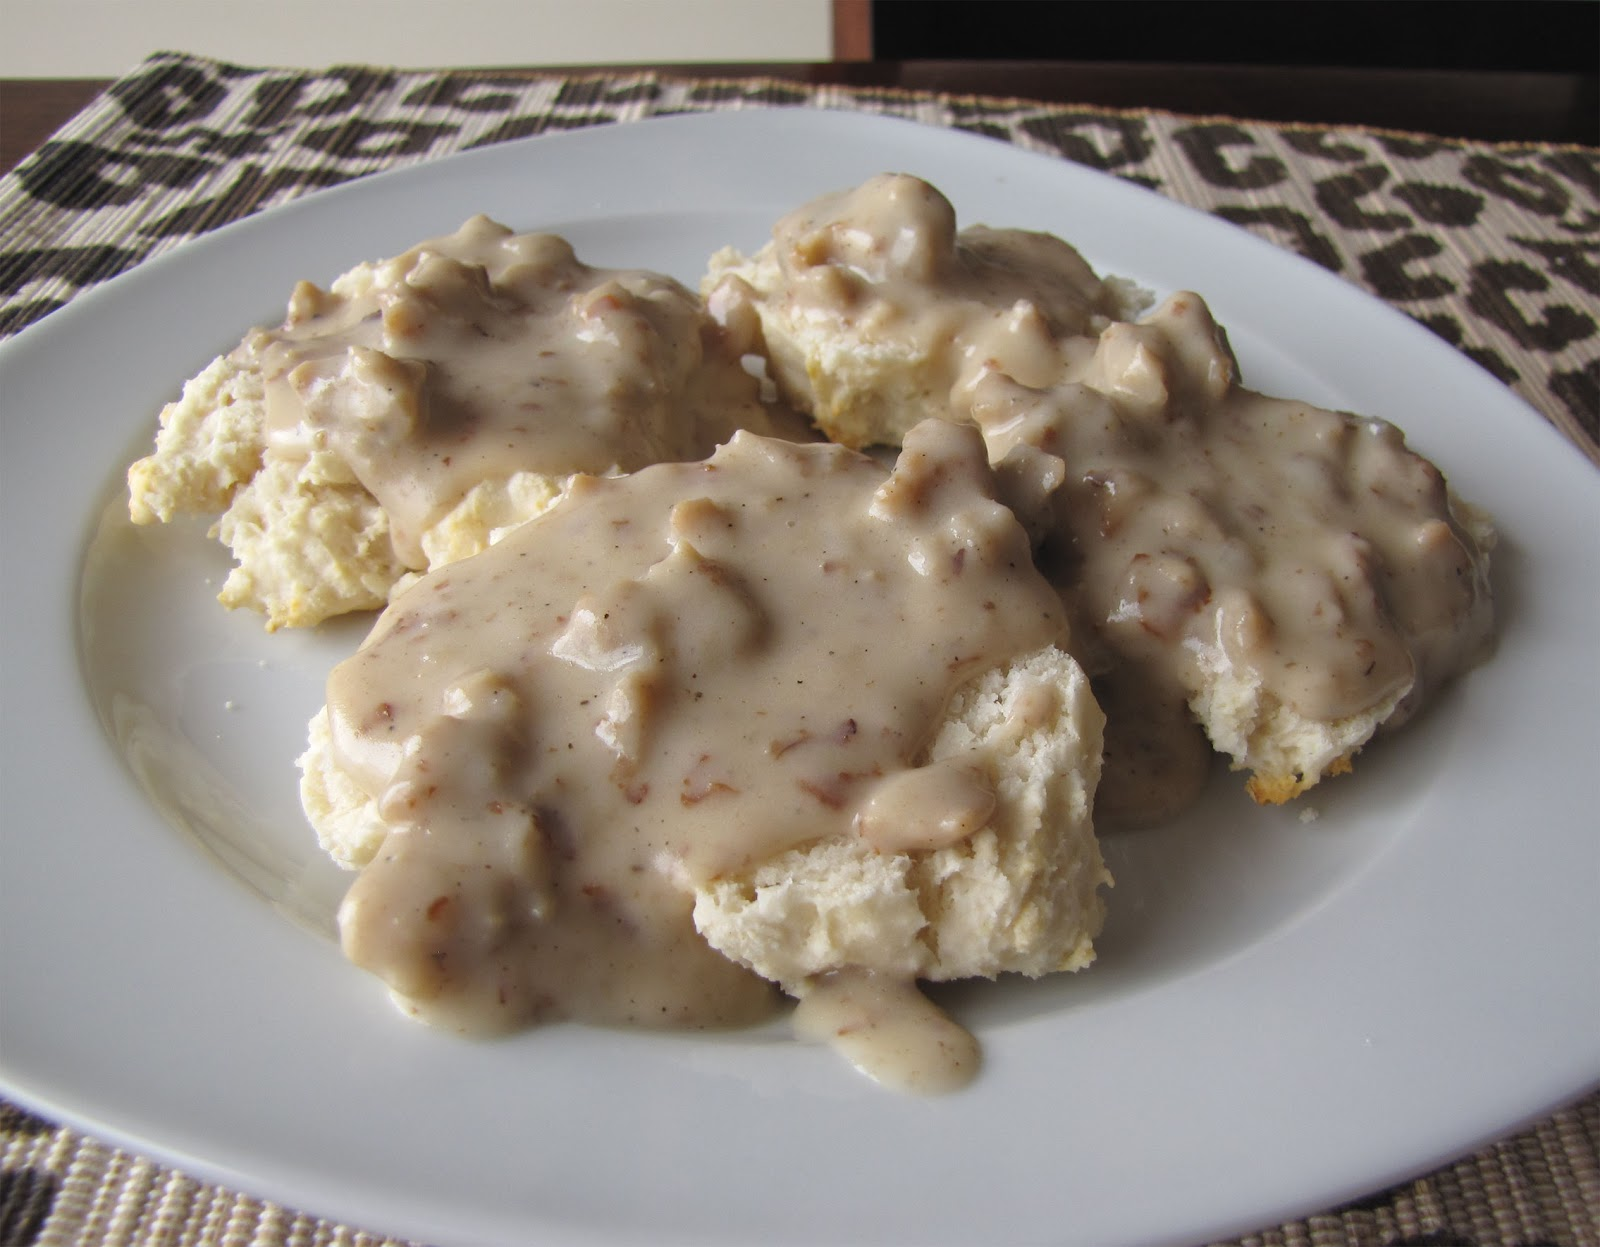 The Snarky Chickpea: Latest Addiction: Vegan Sausage Gravy